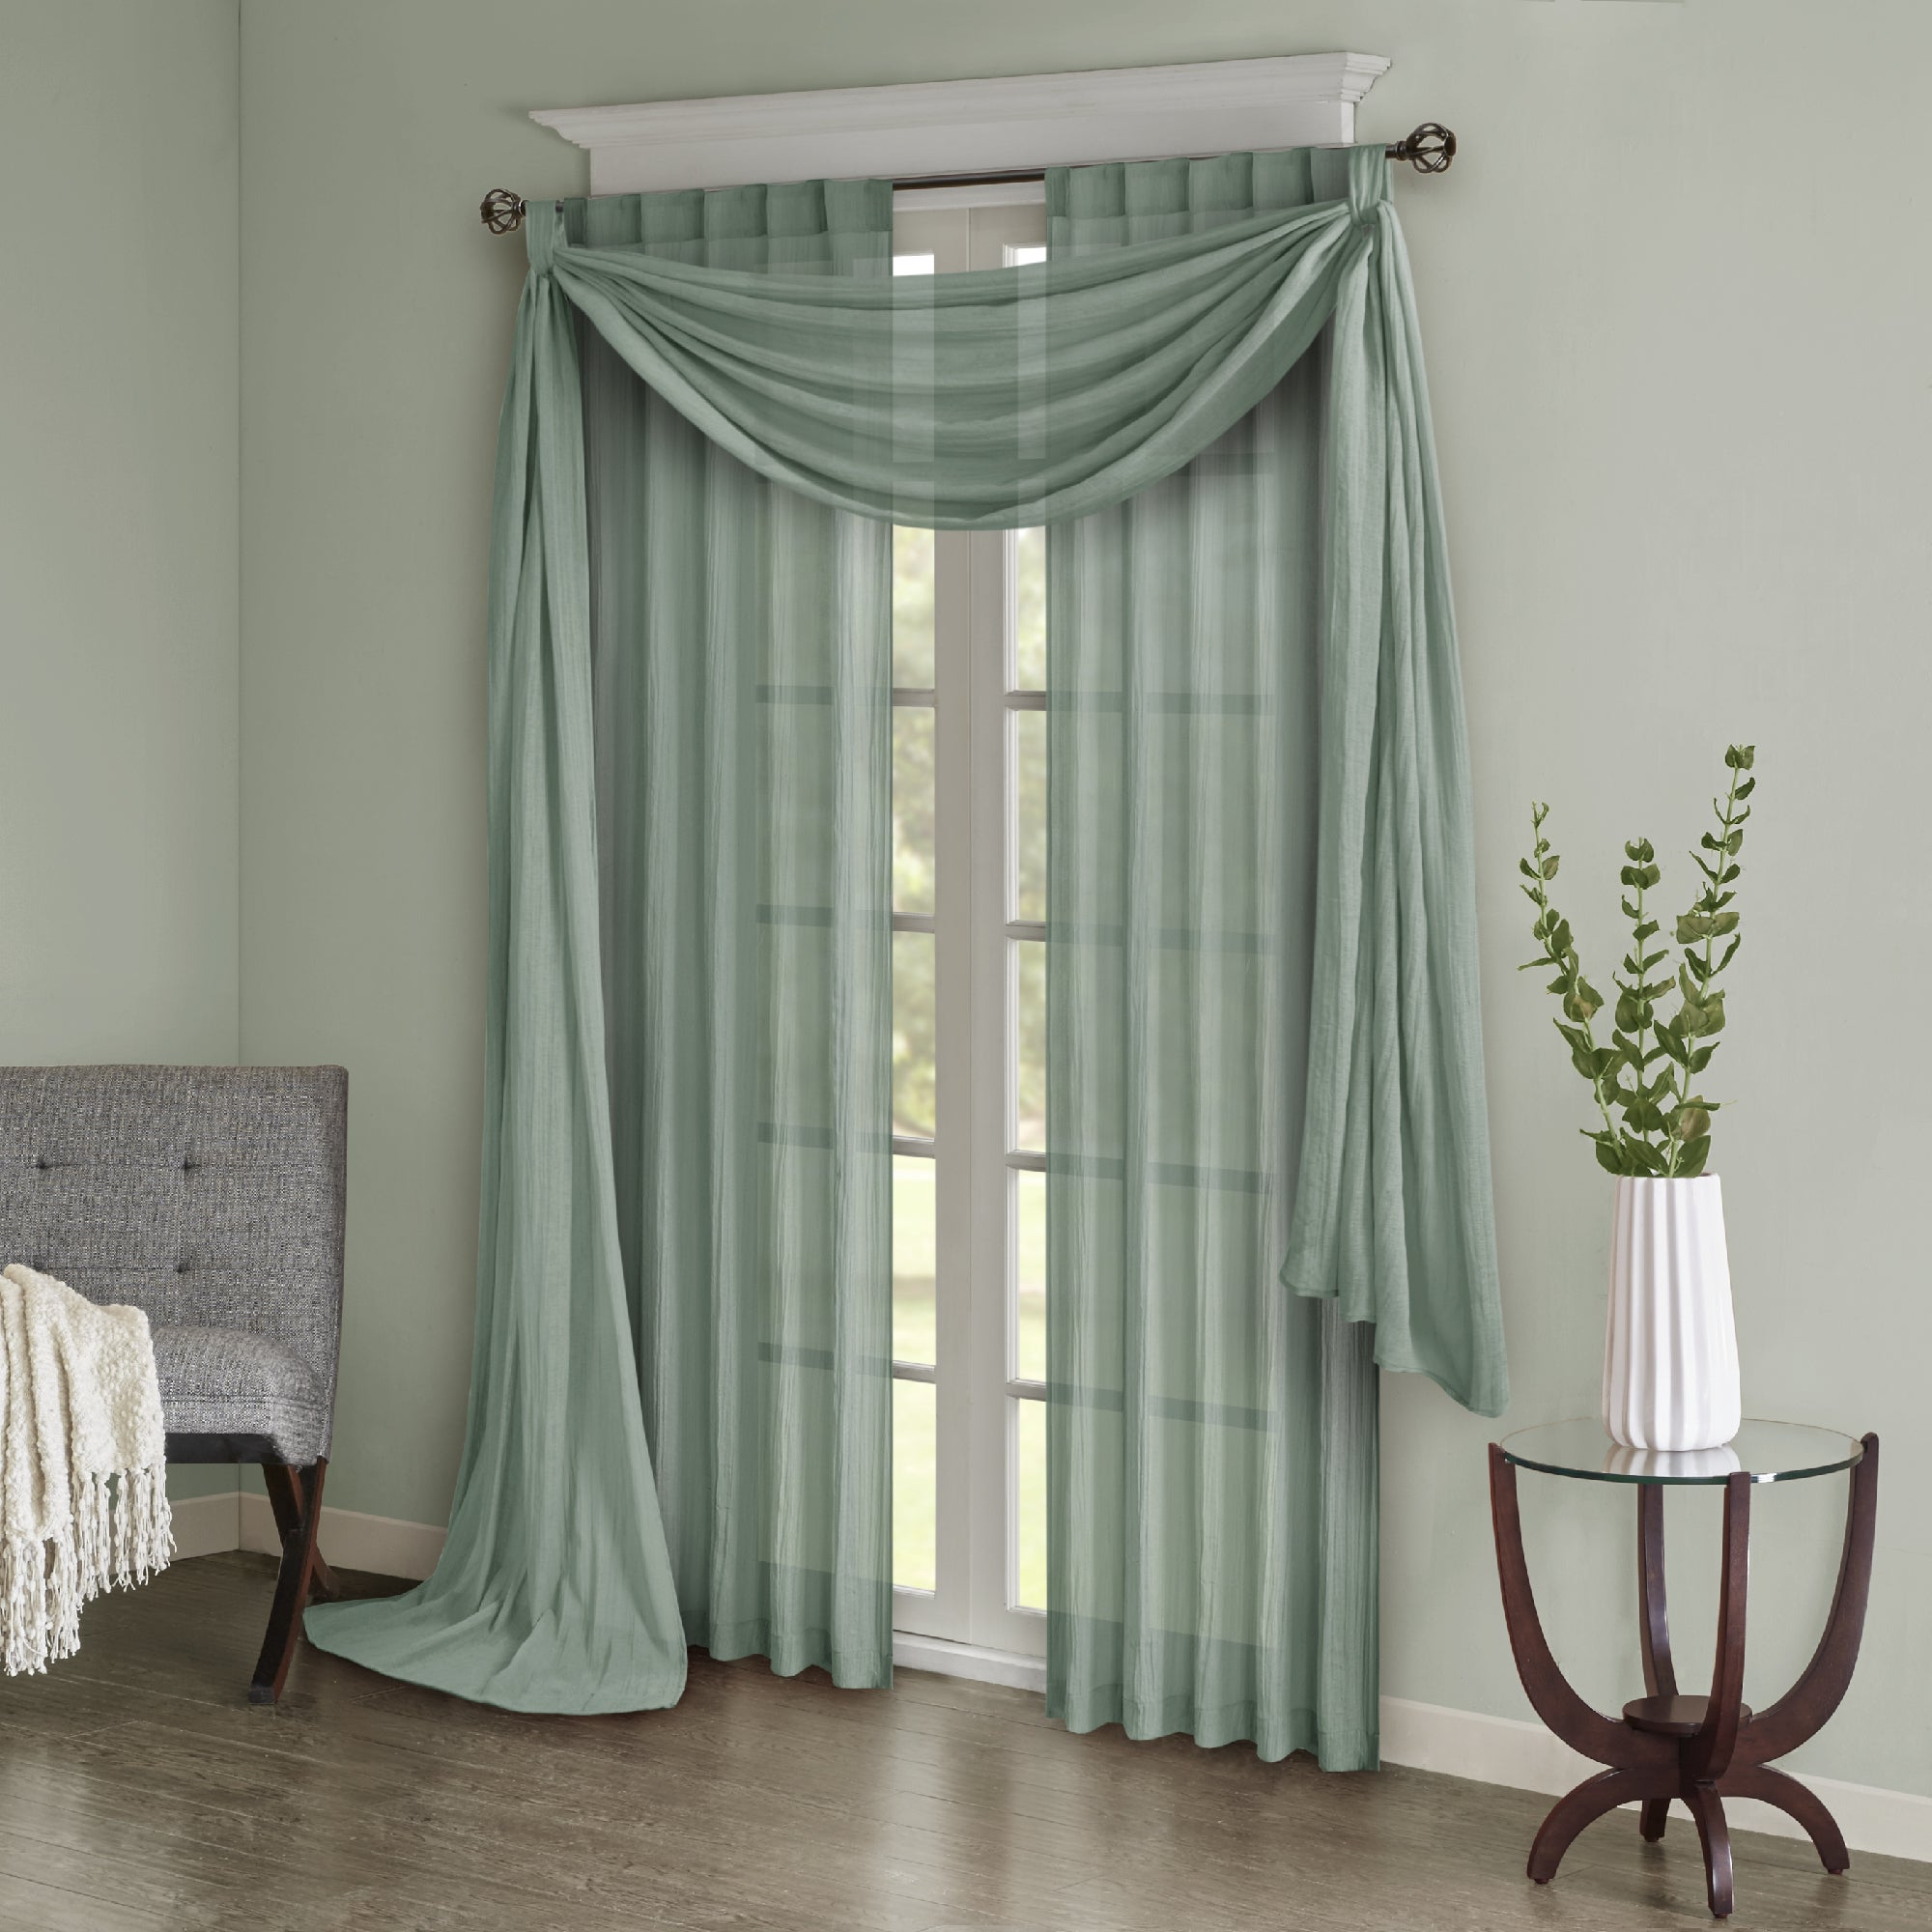 2021 Kaylee Solid Crushed Sheer Window Curtain Pairs For Madison Park Kaylee Solid Crushed Sheer Window Curtain Pair (View 4 of 20)